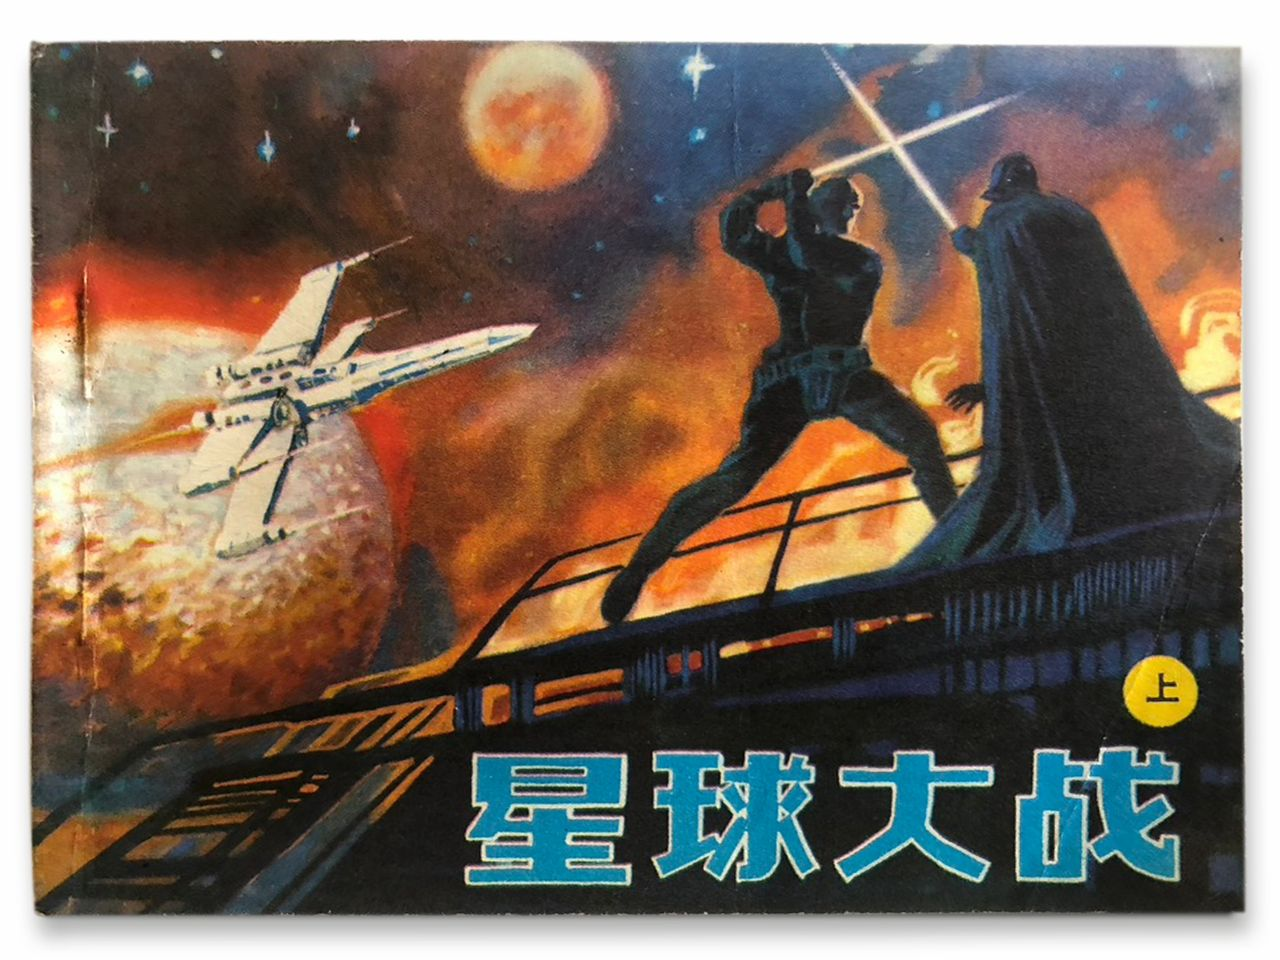 Xing Qiu Da Zhan III (Star Wars: A New Hope - Chinese Comic)